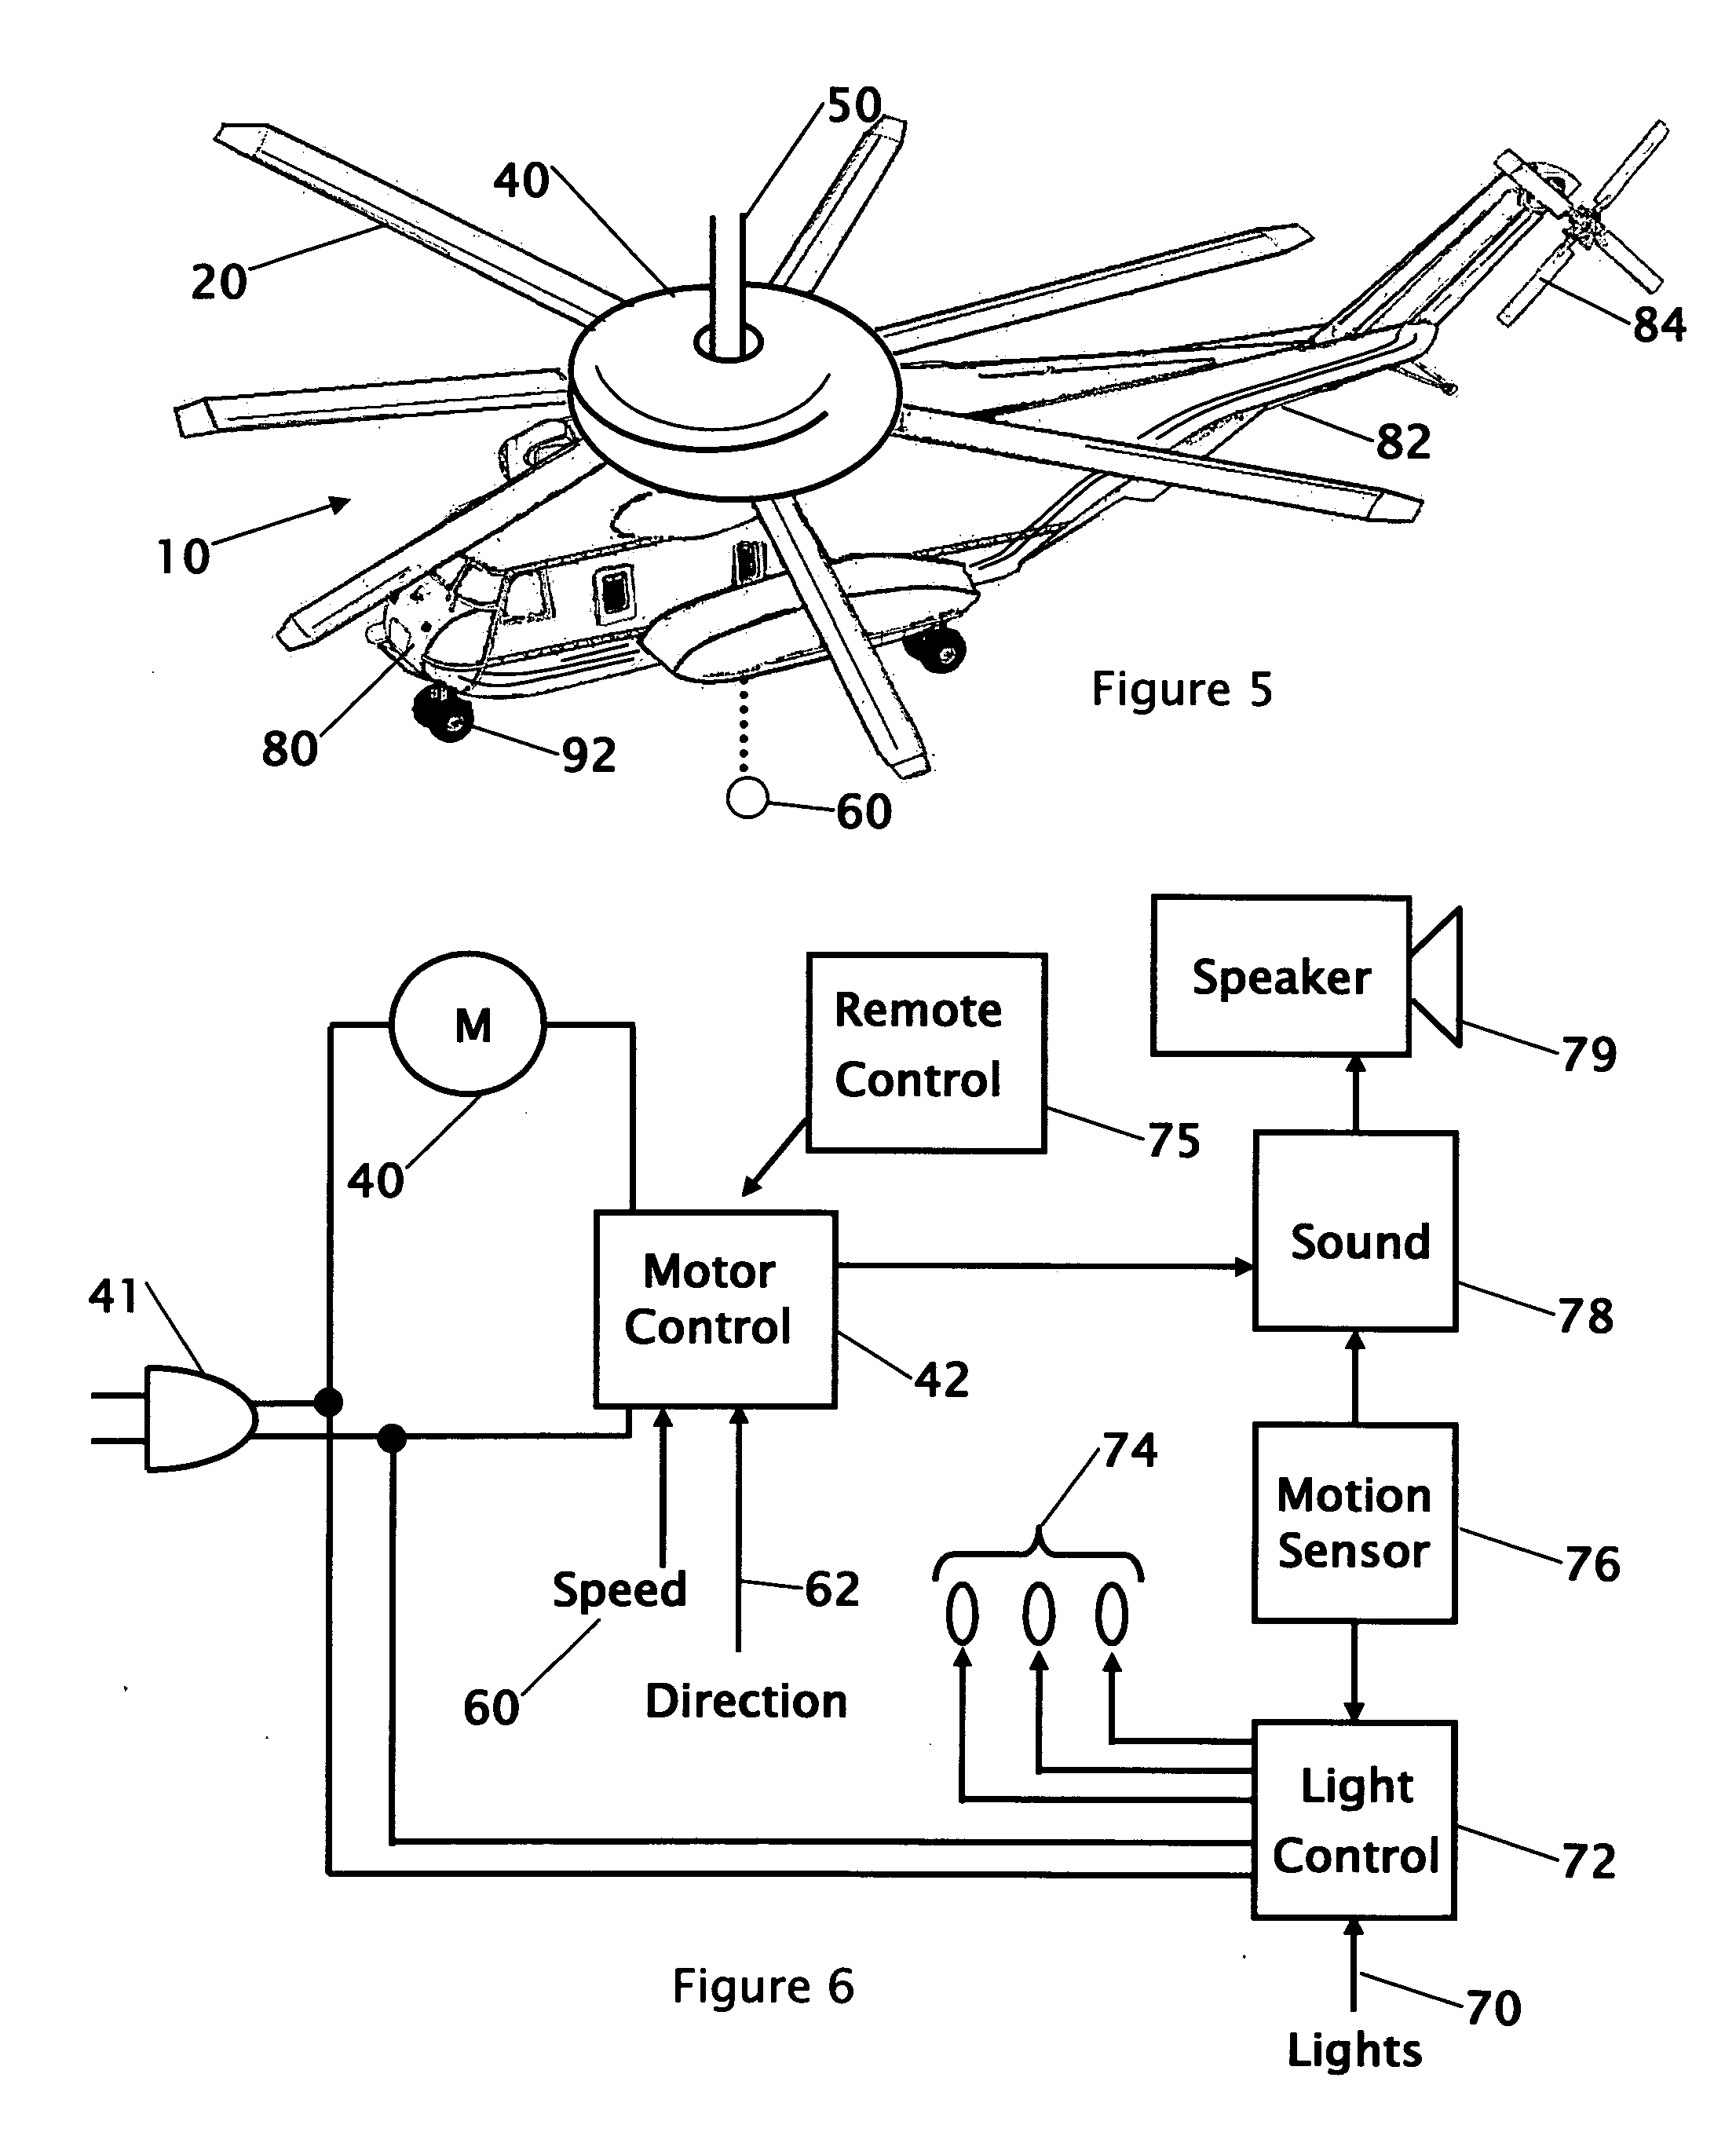 ceiling fan switch wiring diagram further ceiling fan switch wiring